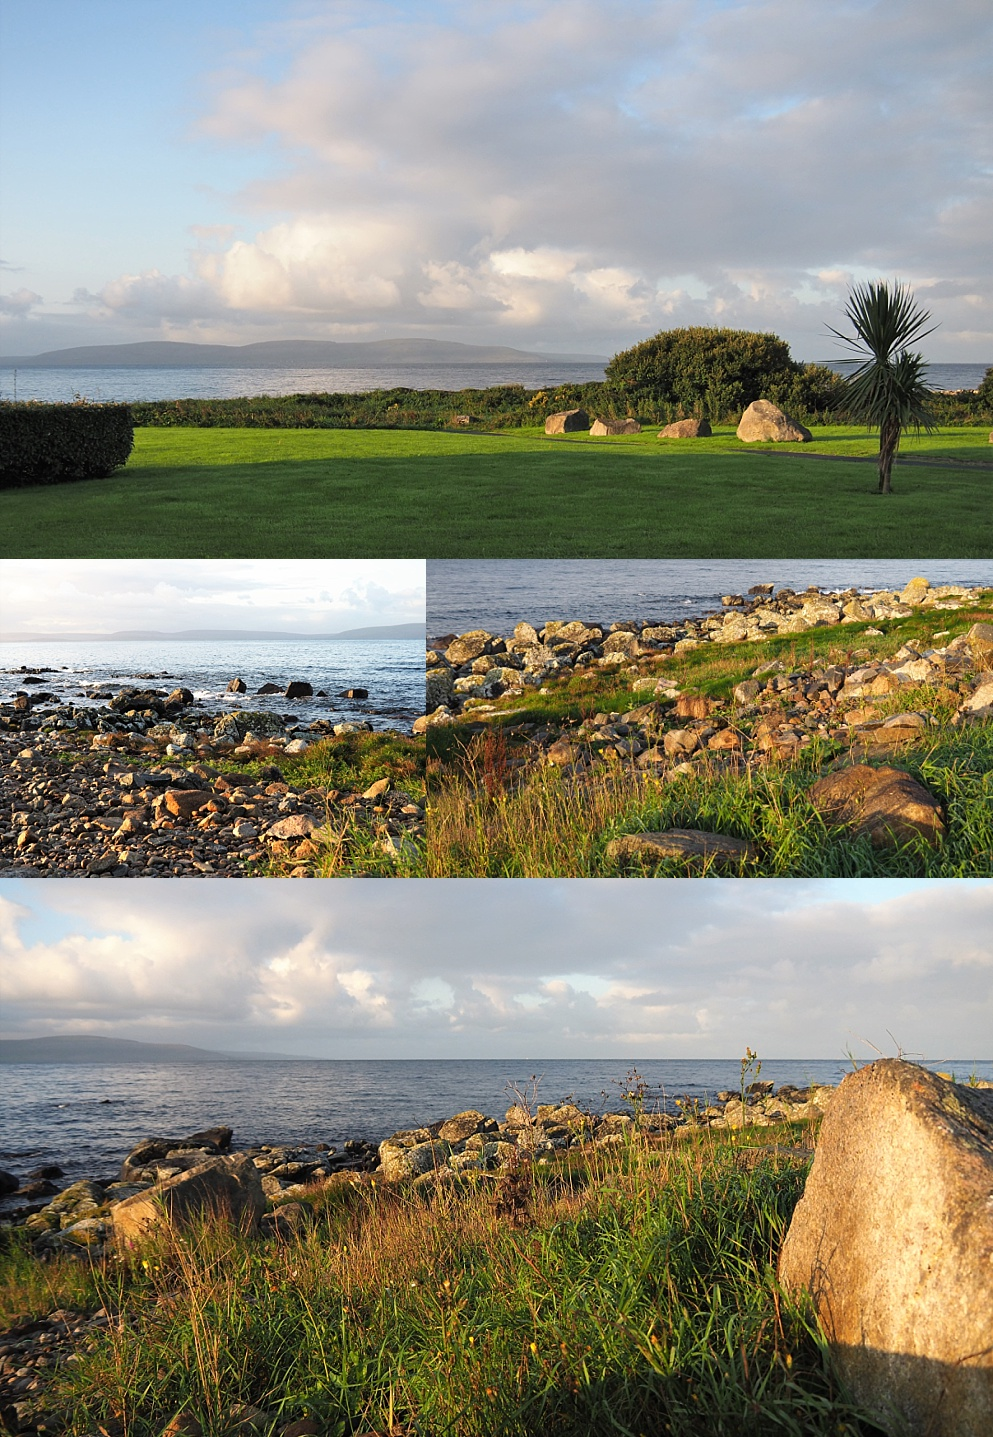 4-photo collage of sunrise on Galway Bay